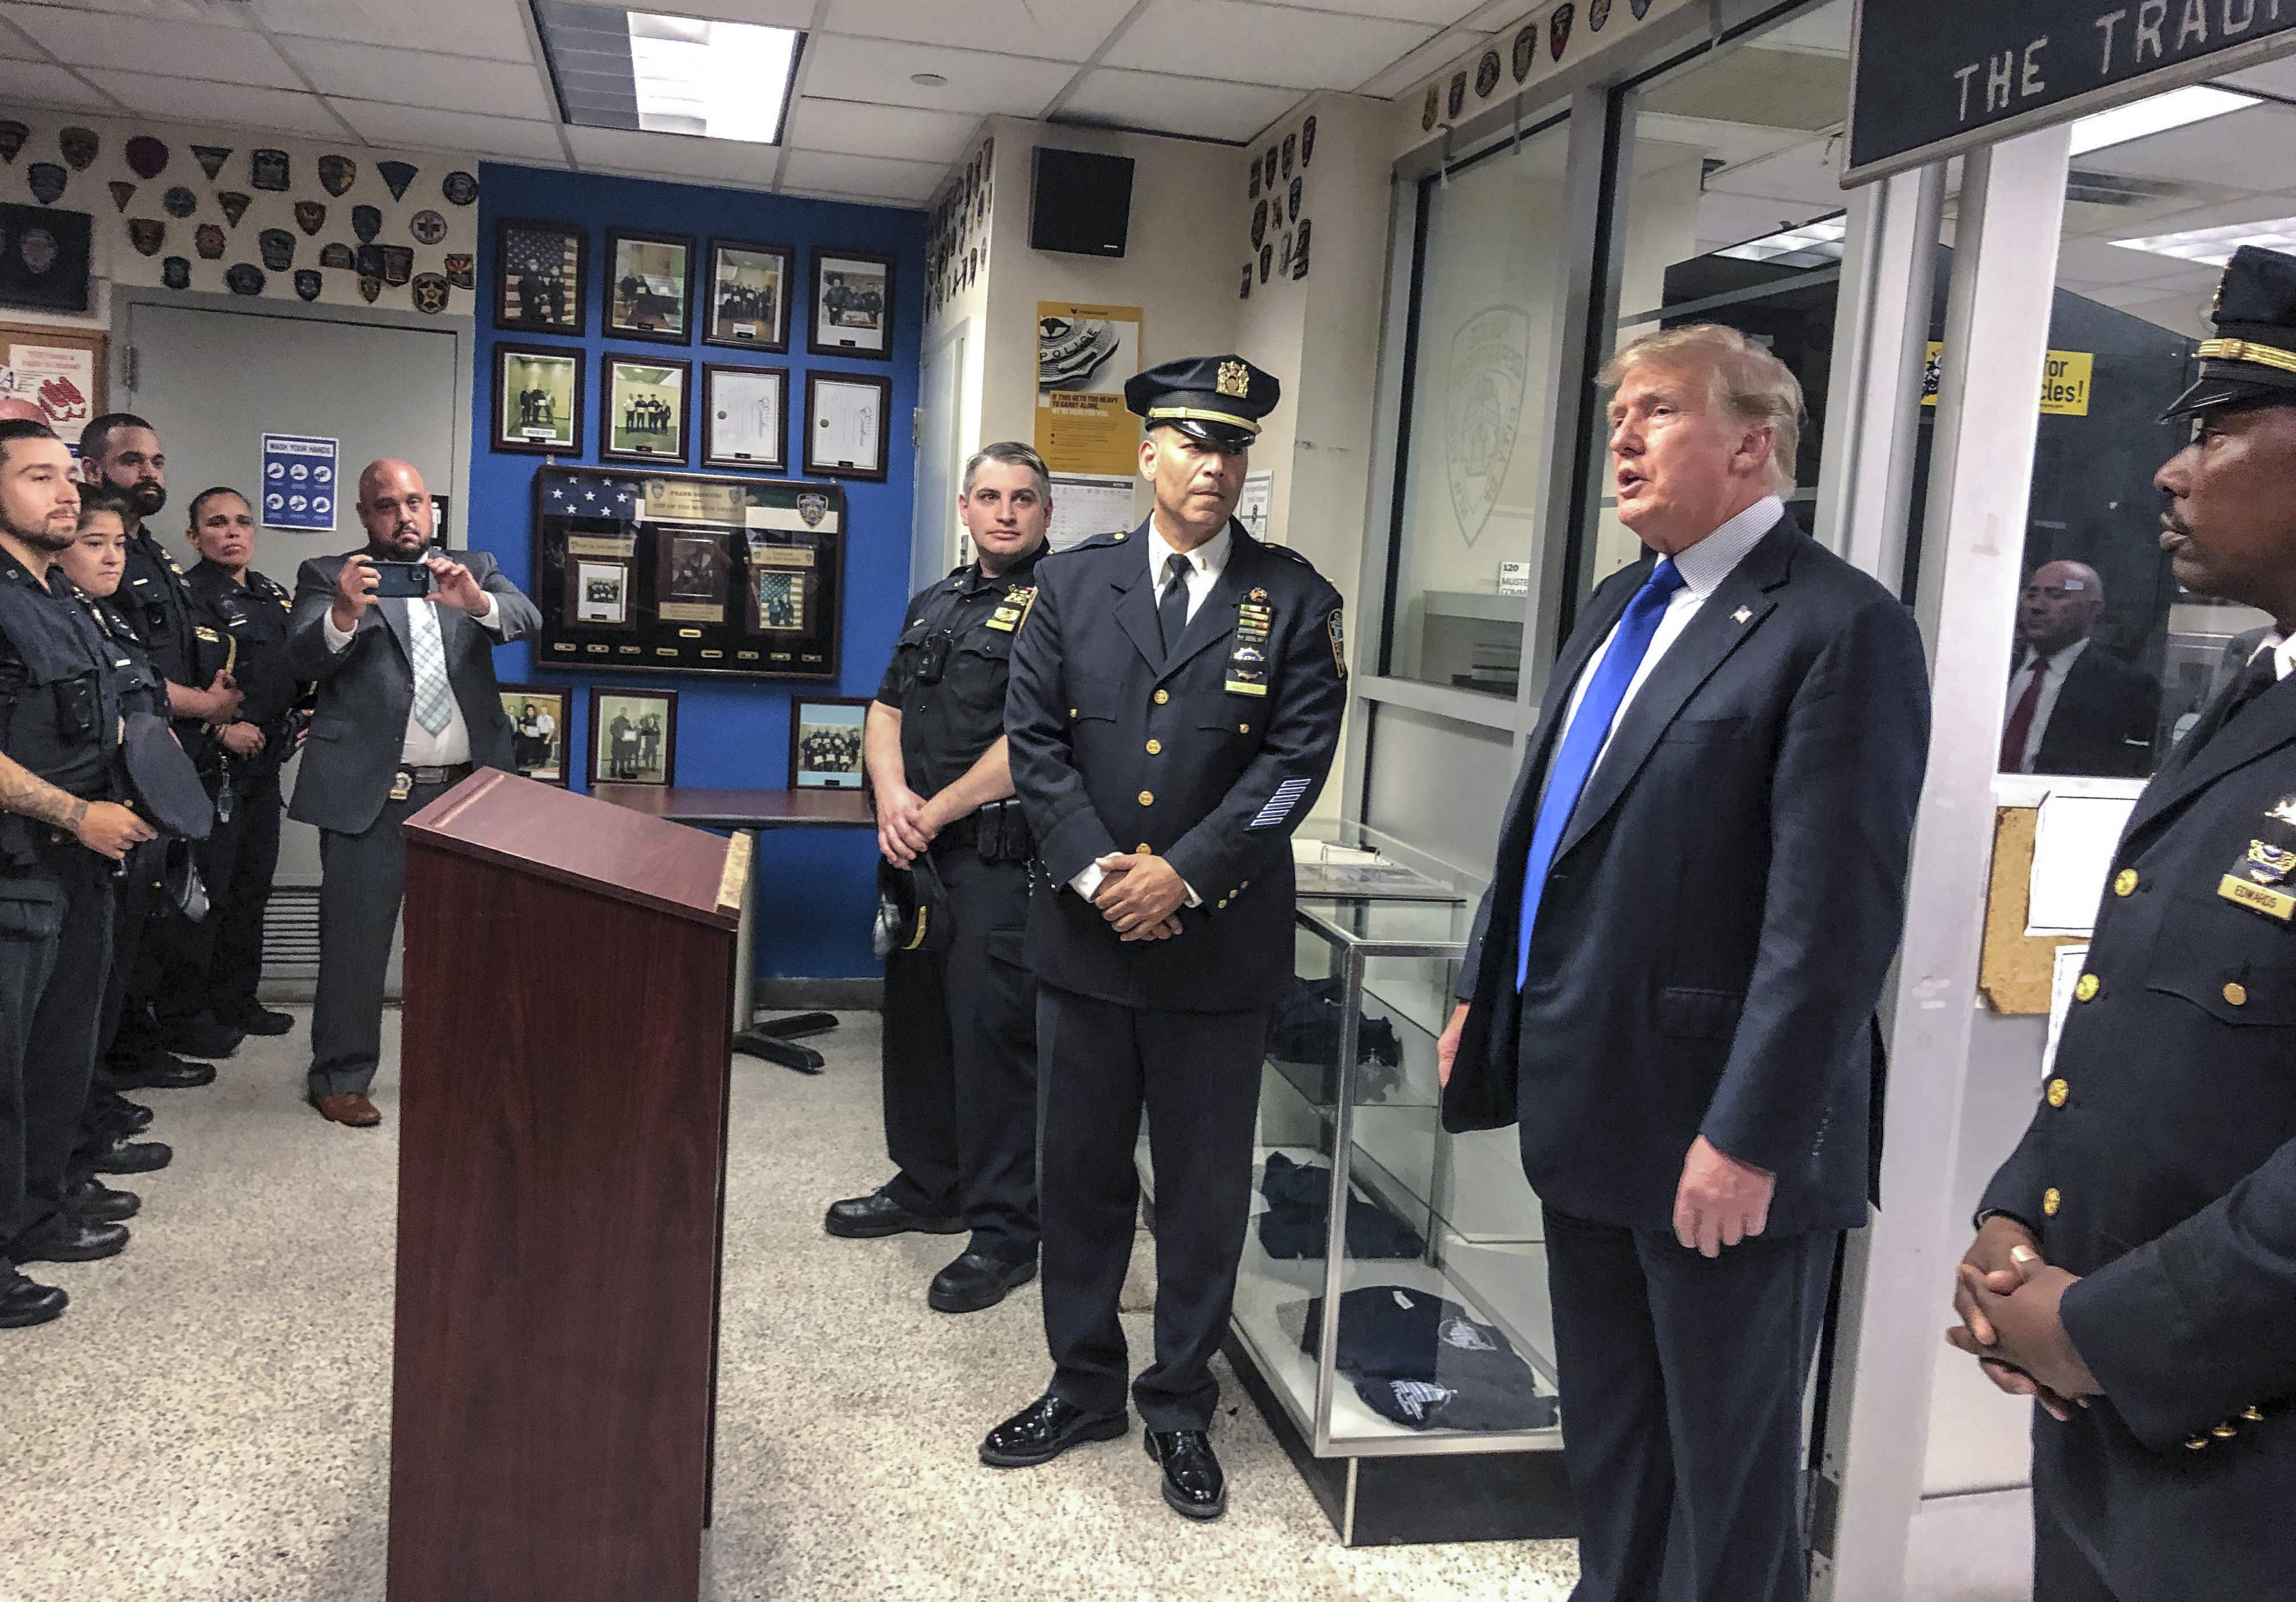 Former President Donald Trump visits the New York Police Department's 17th police precinct on Saturday, Sept. 11, 2021.